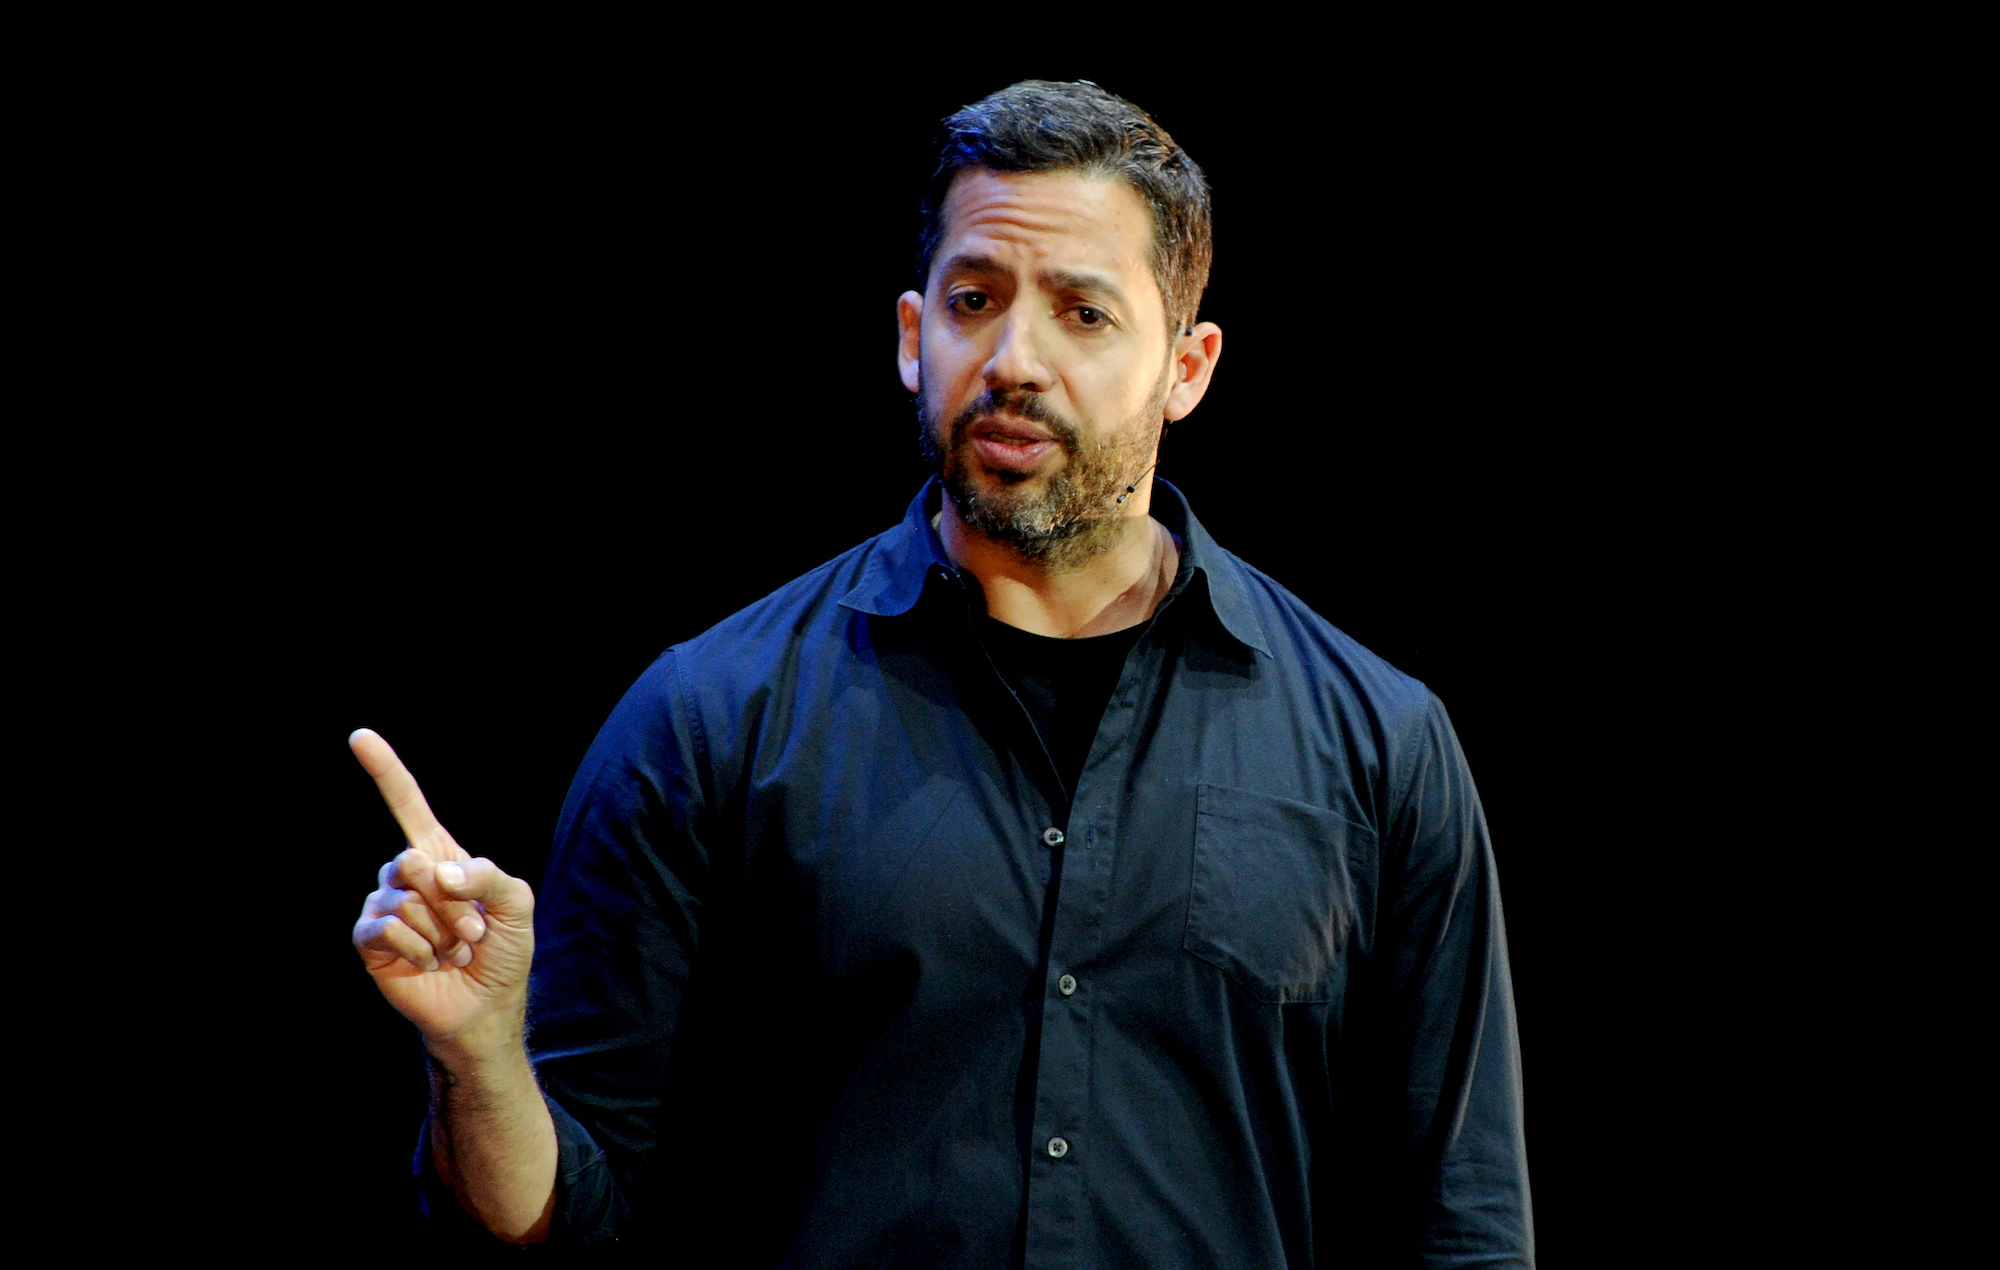 David Blaine to fly from New Jersey to New York using just balloons